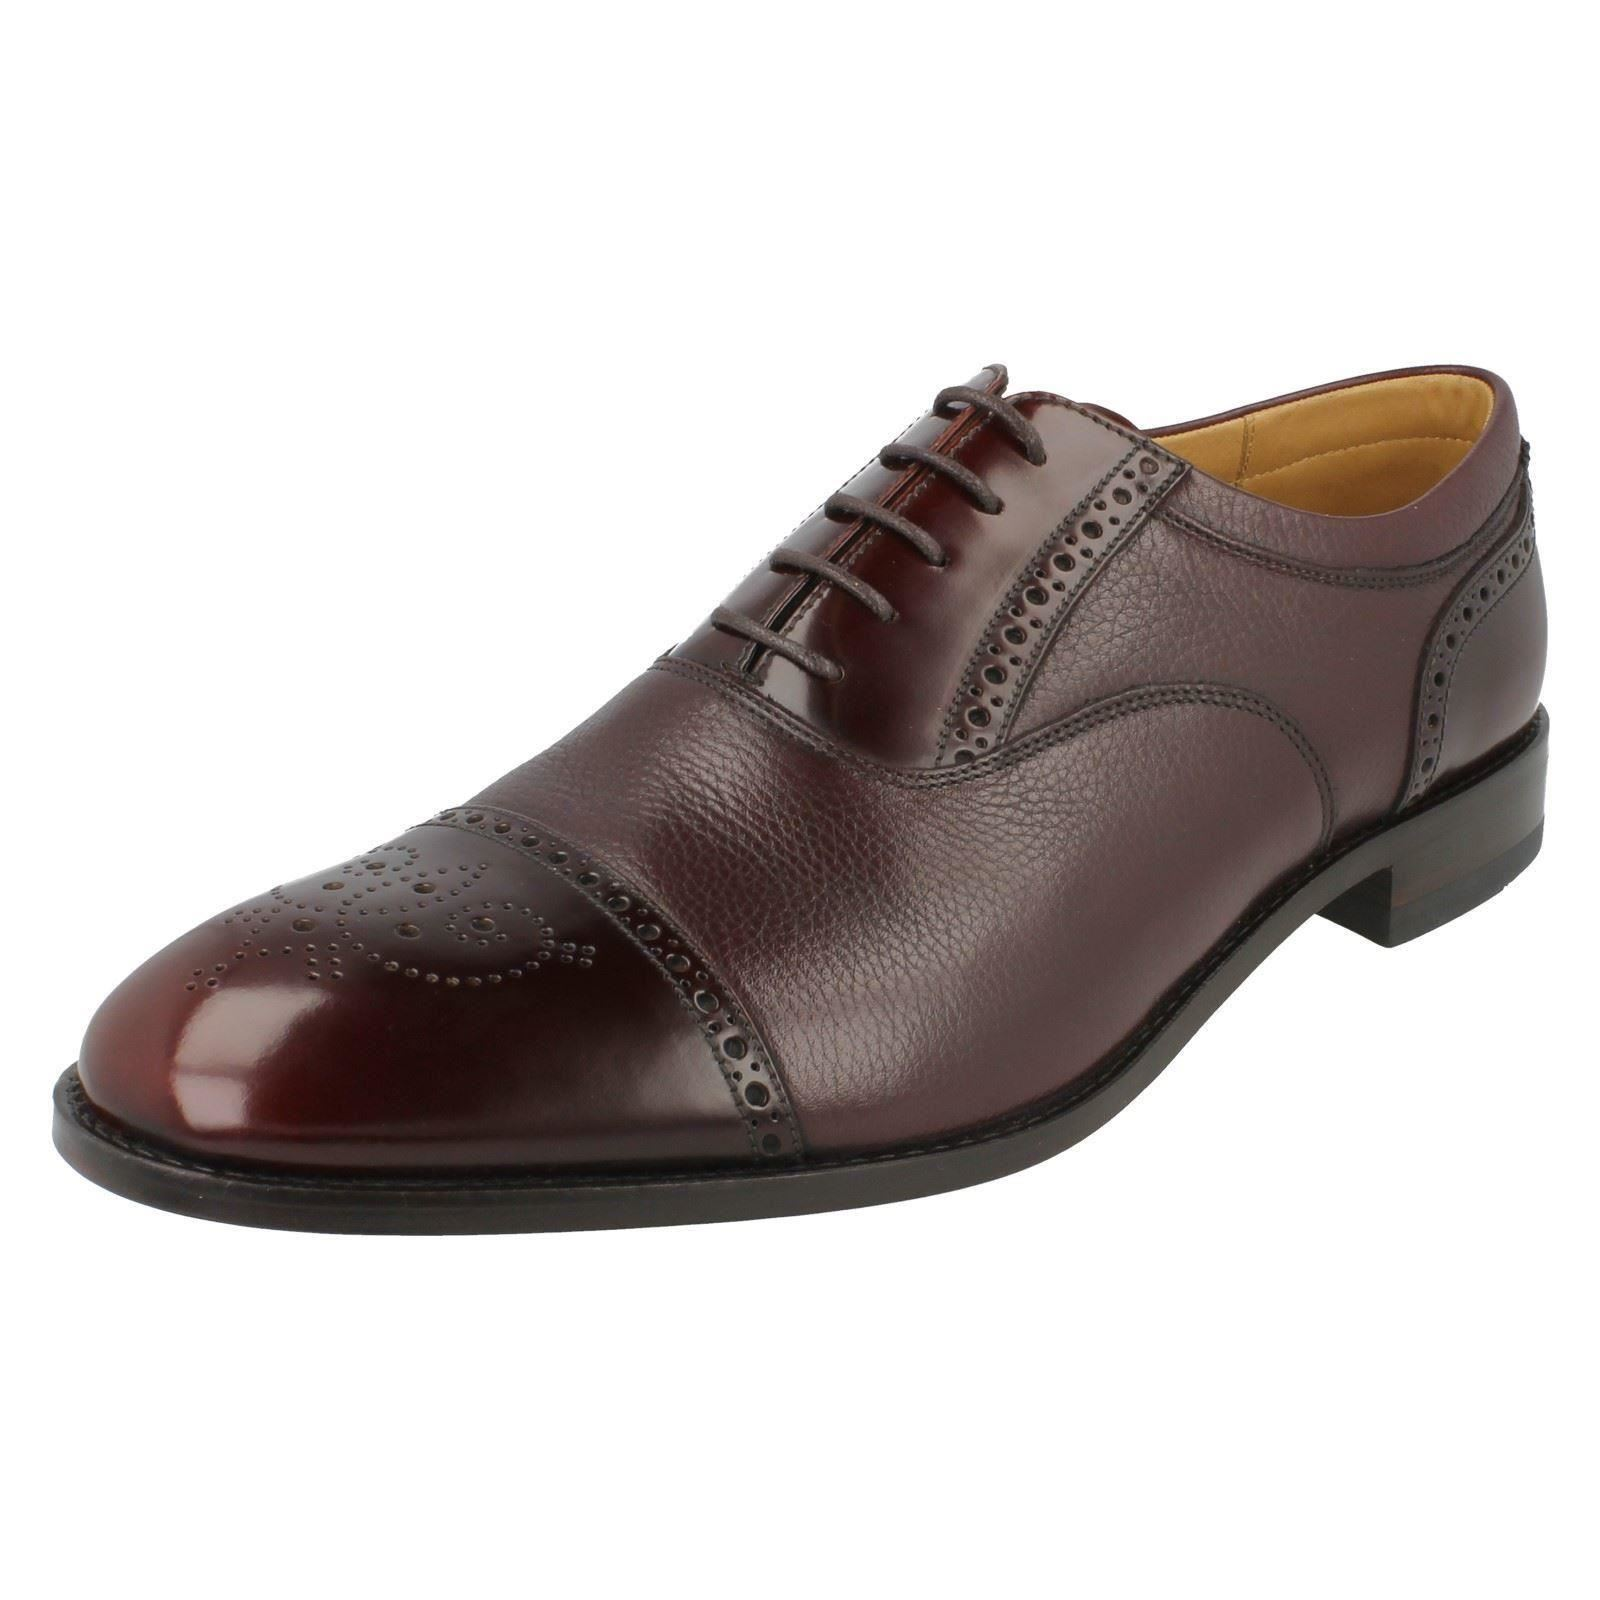 Brogue Punching Leather Oxford Shoes